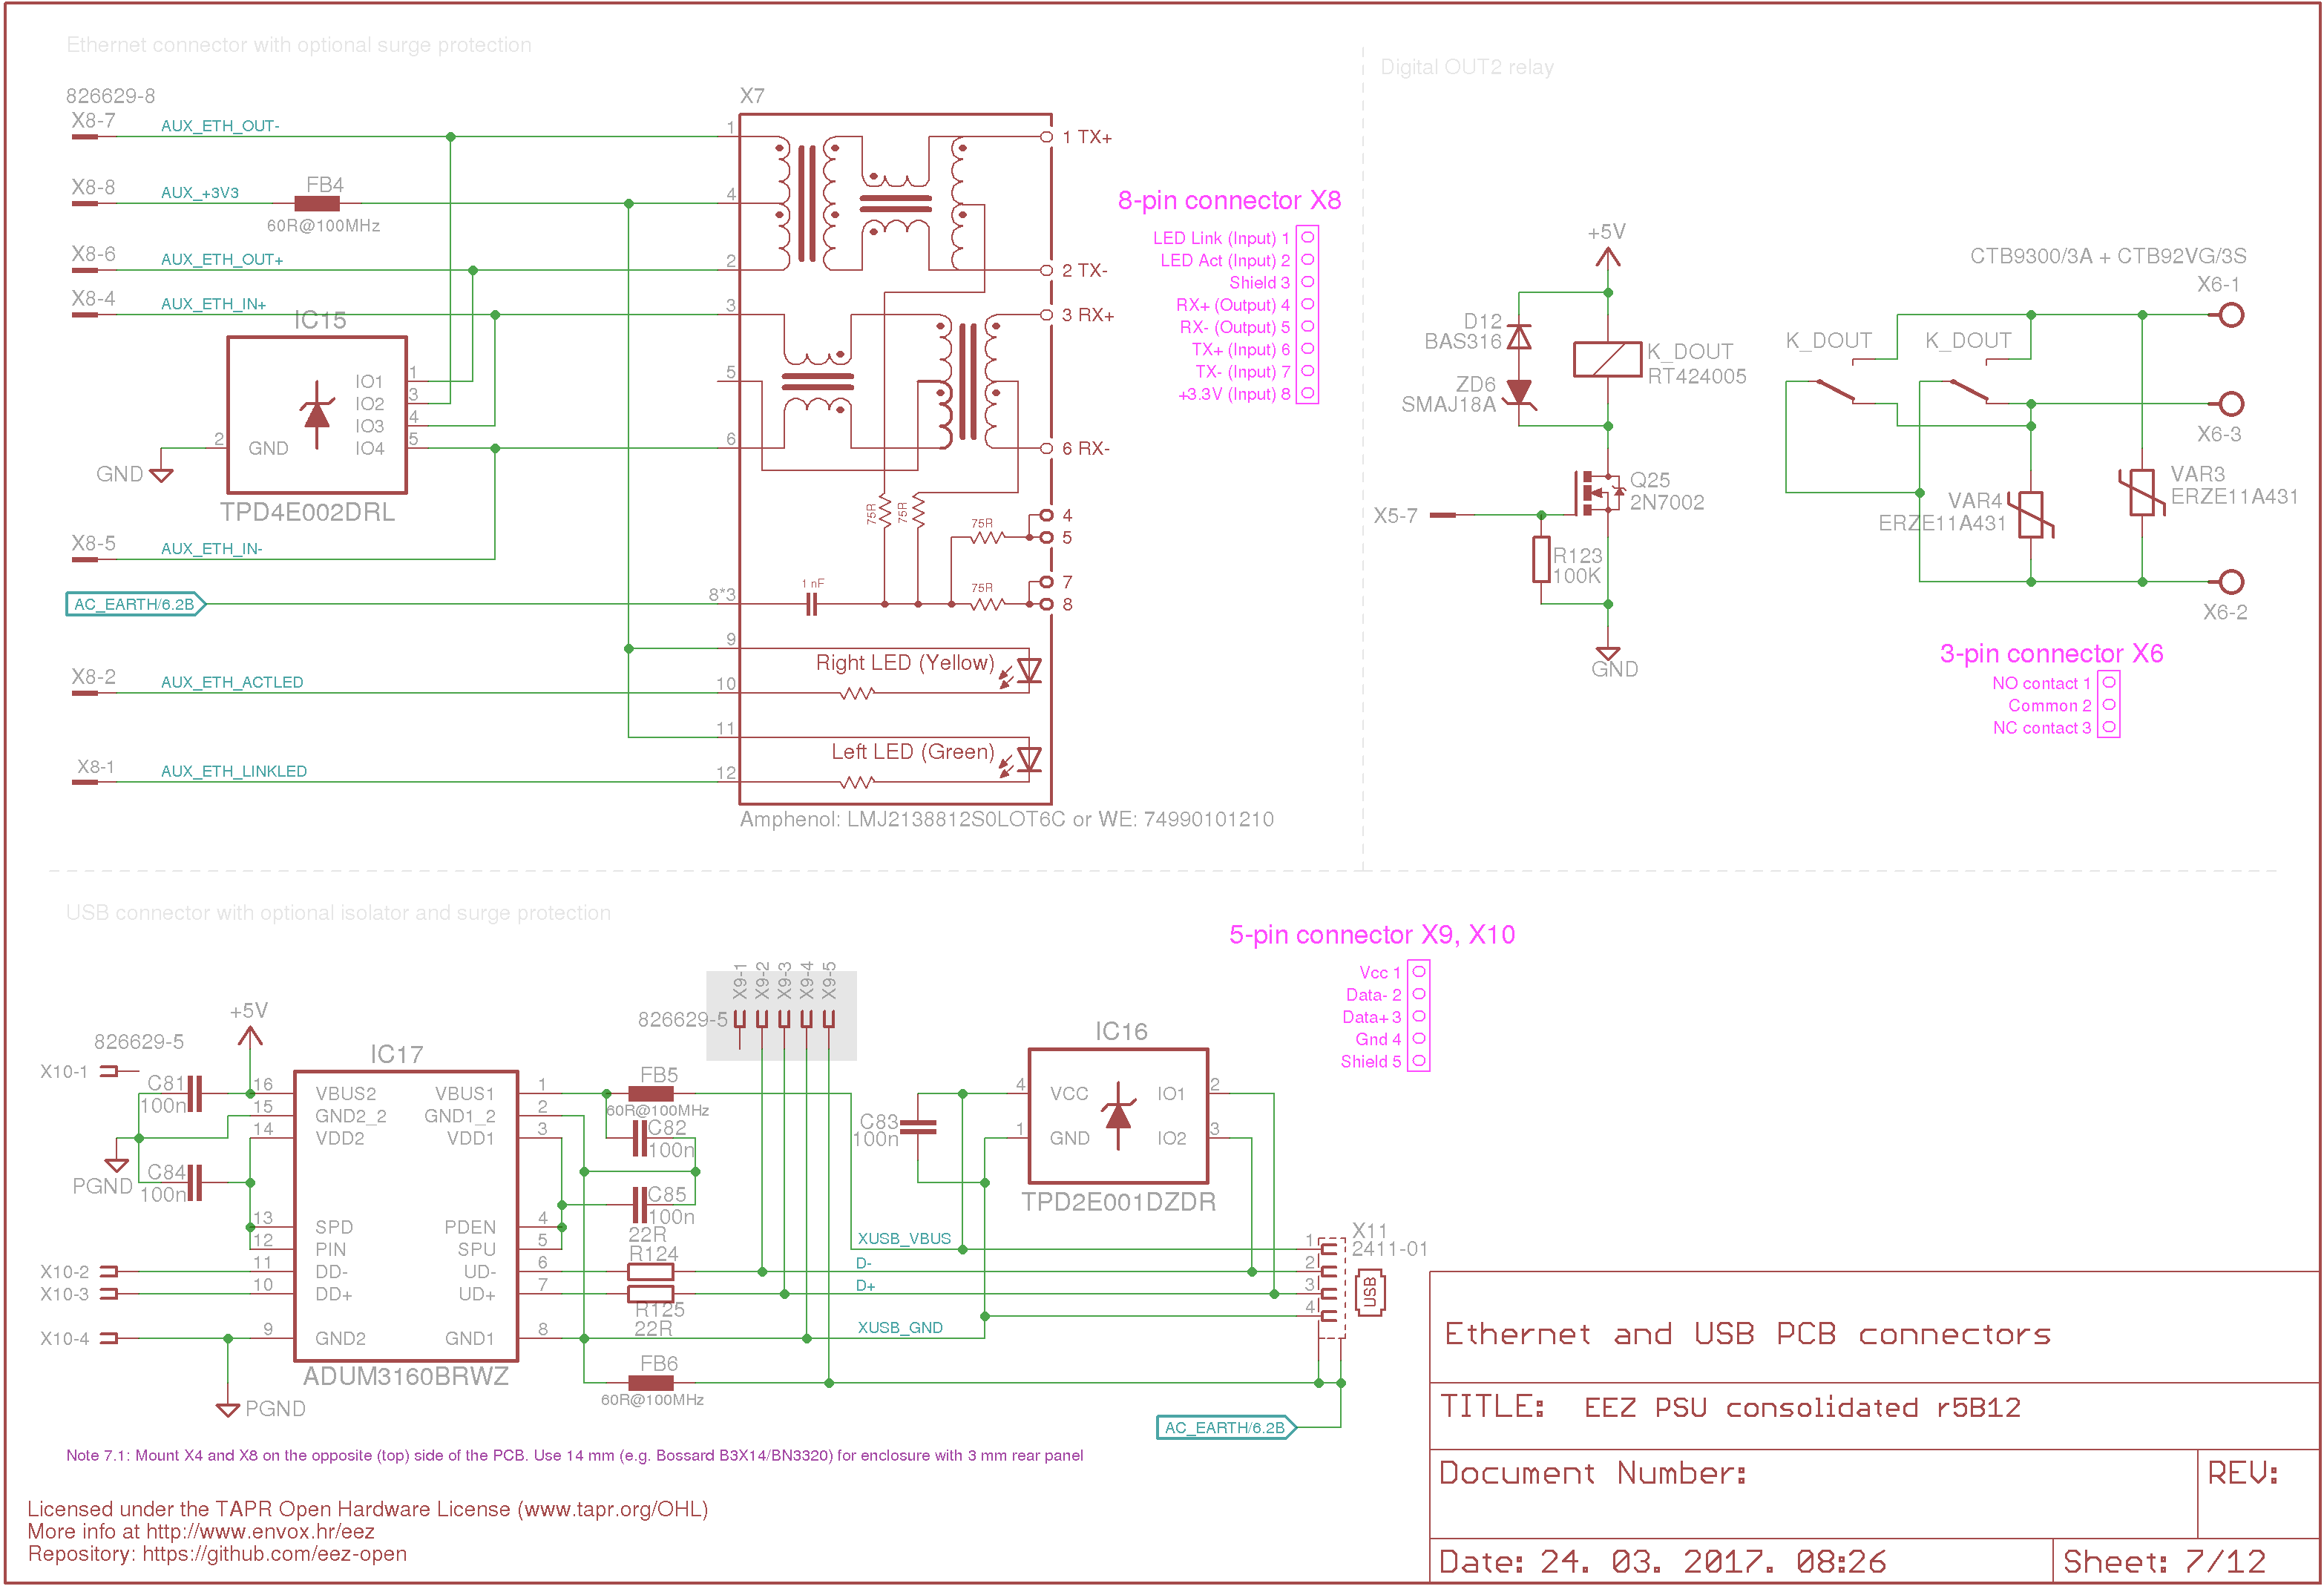 aux_ps_r5b12_sheet7of12.png